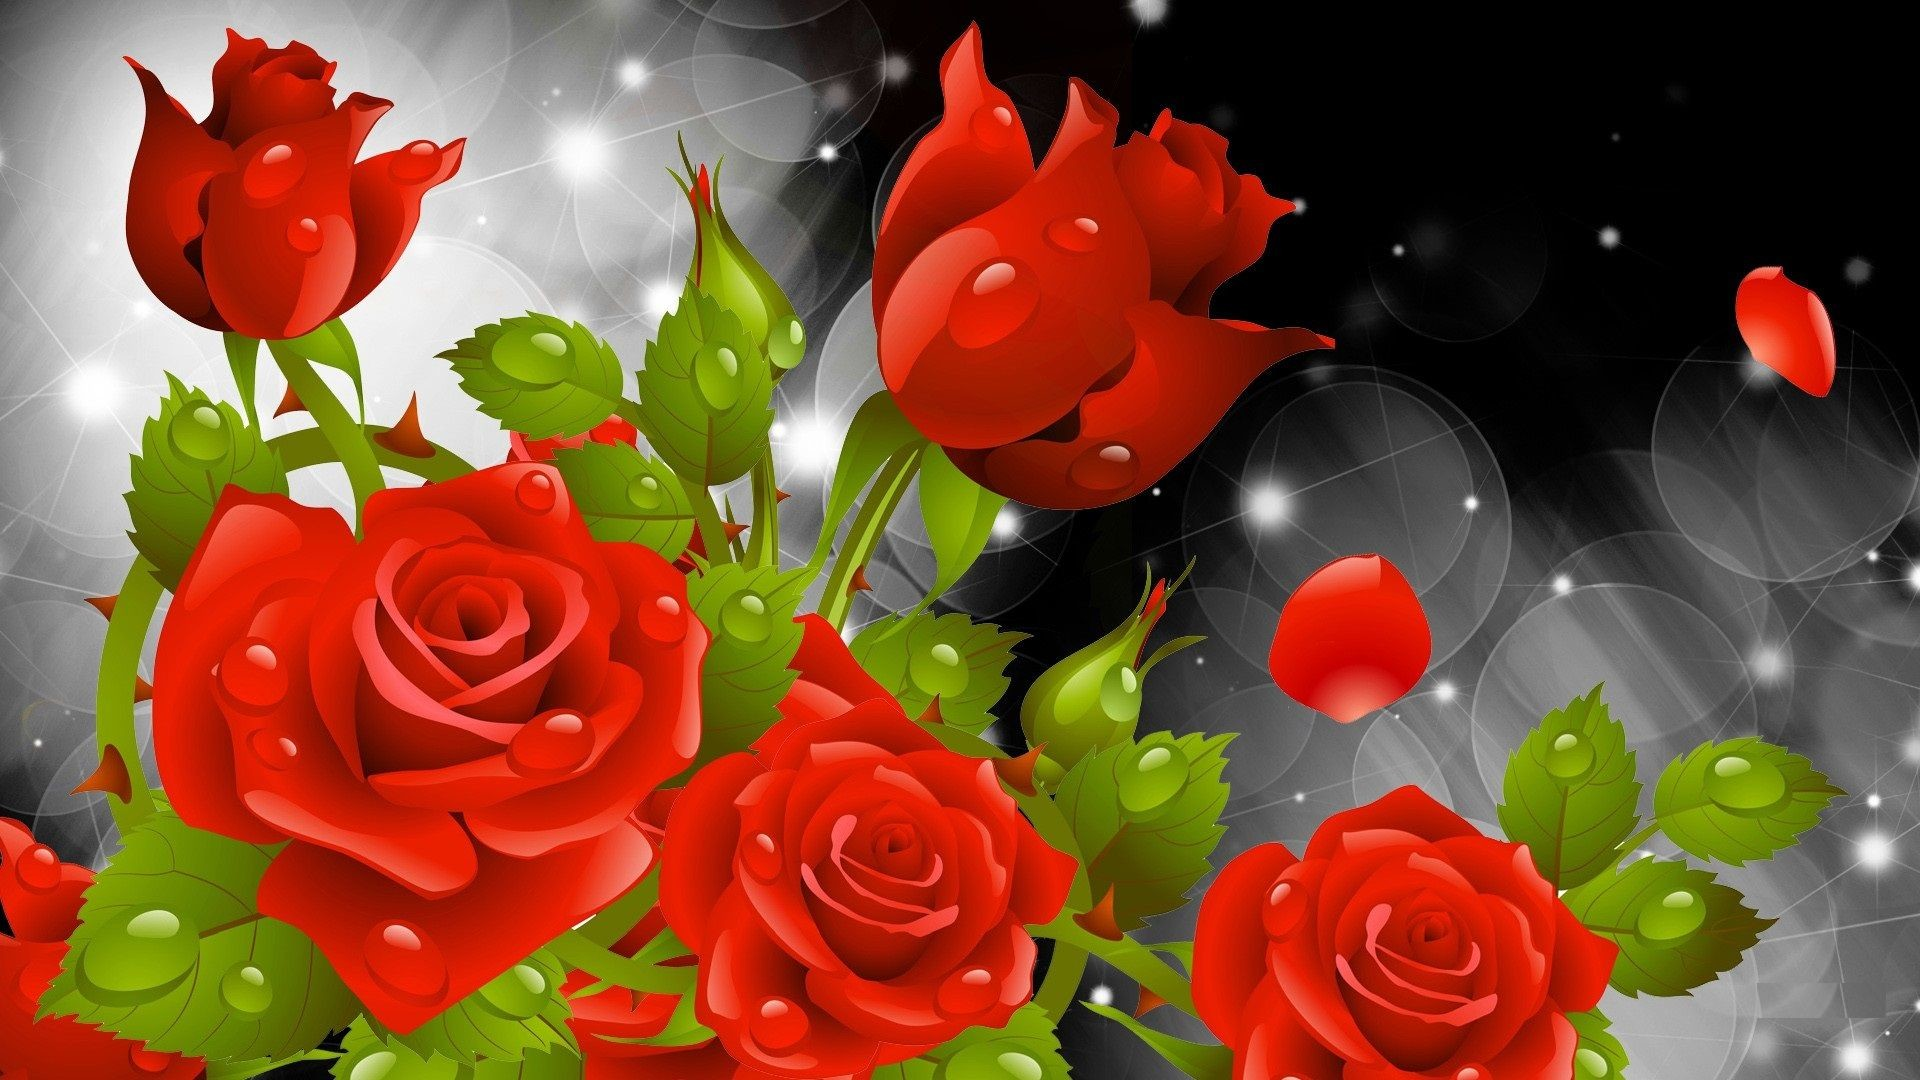 3d 1080p Flowers Wallpapers HD images